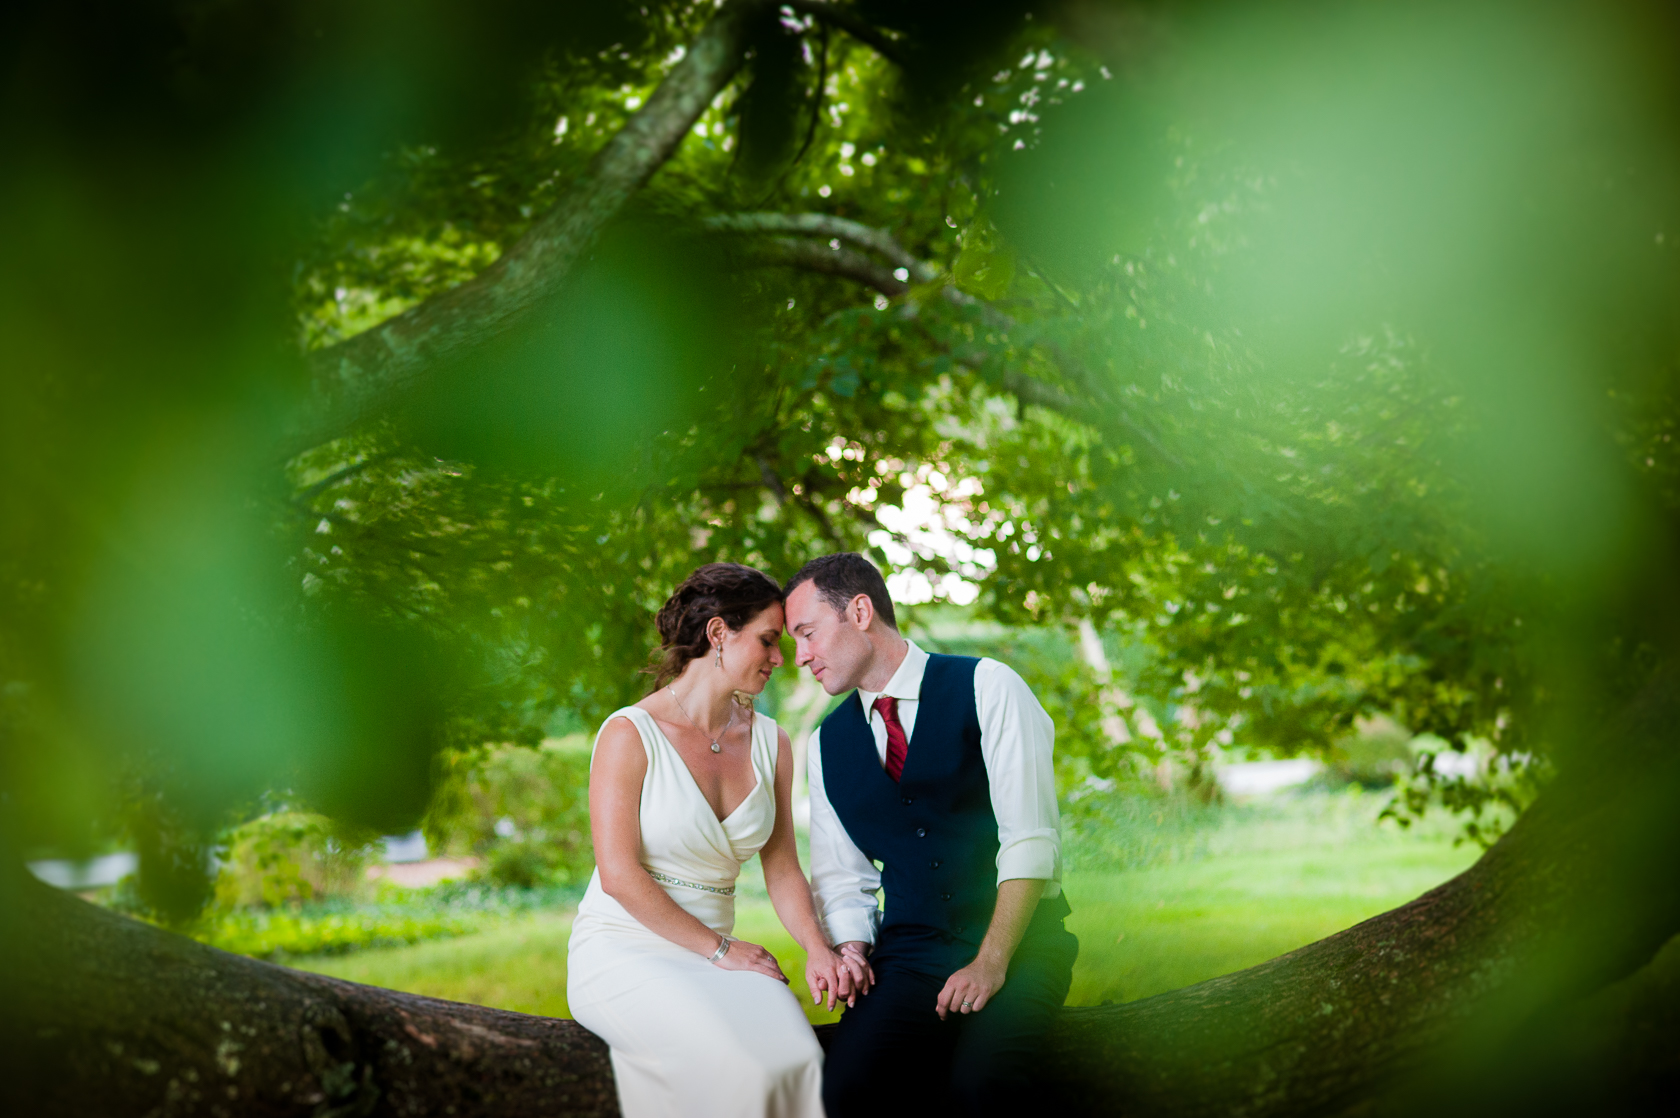 bride and groom embrace under big tree during outdoor wedding